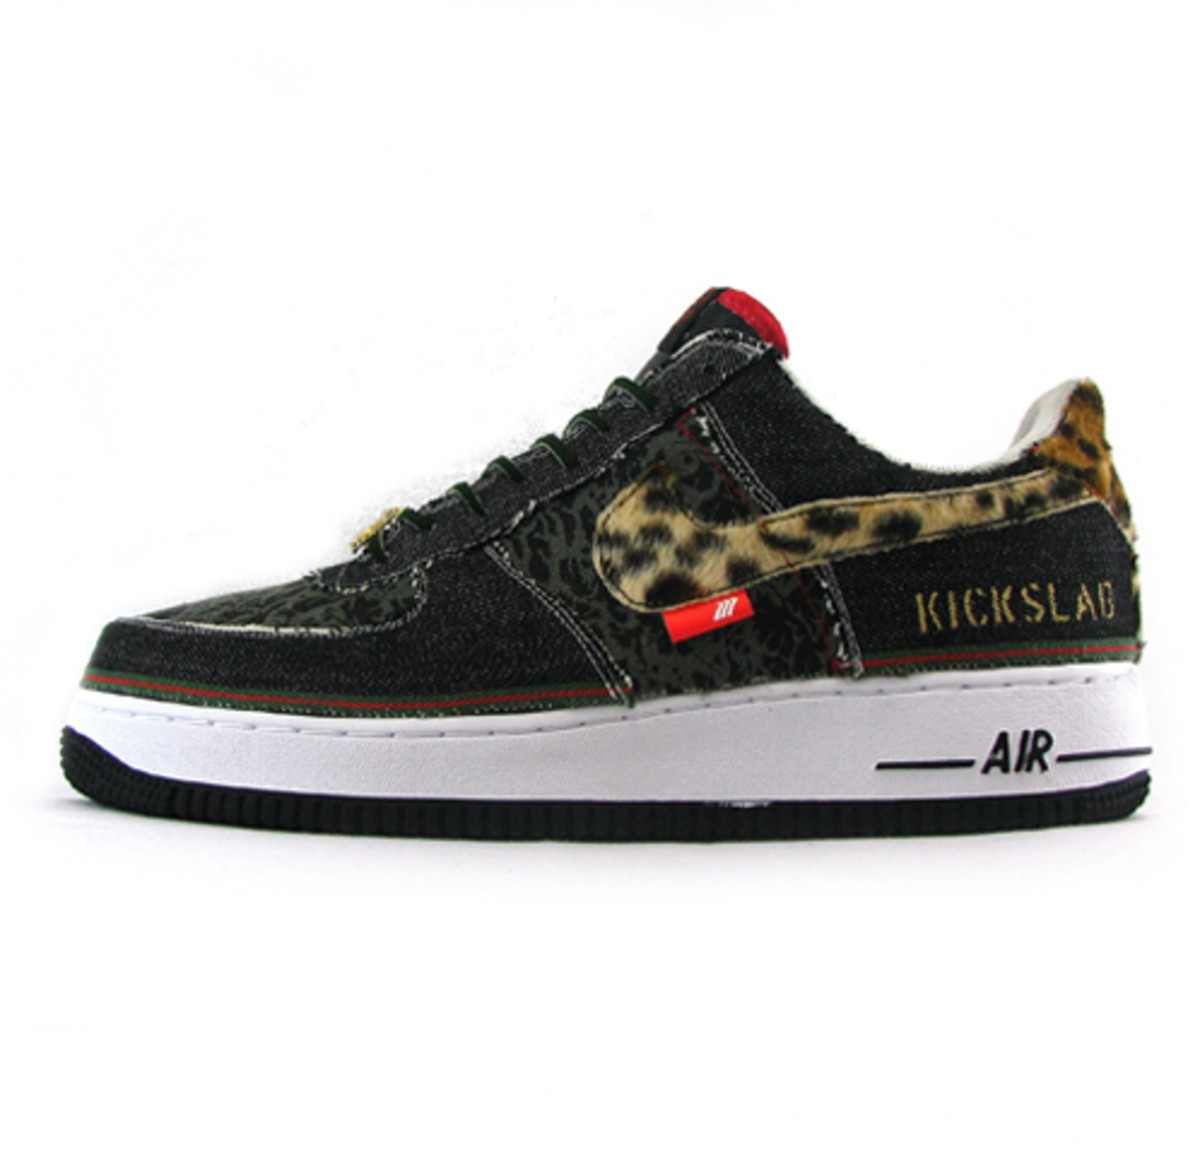 kicks-lab-freshness-sbtg-sable-af1-02